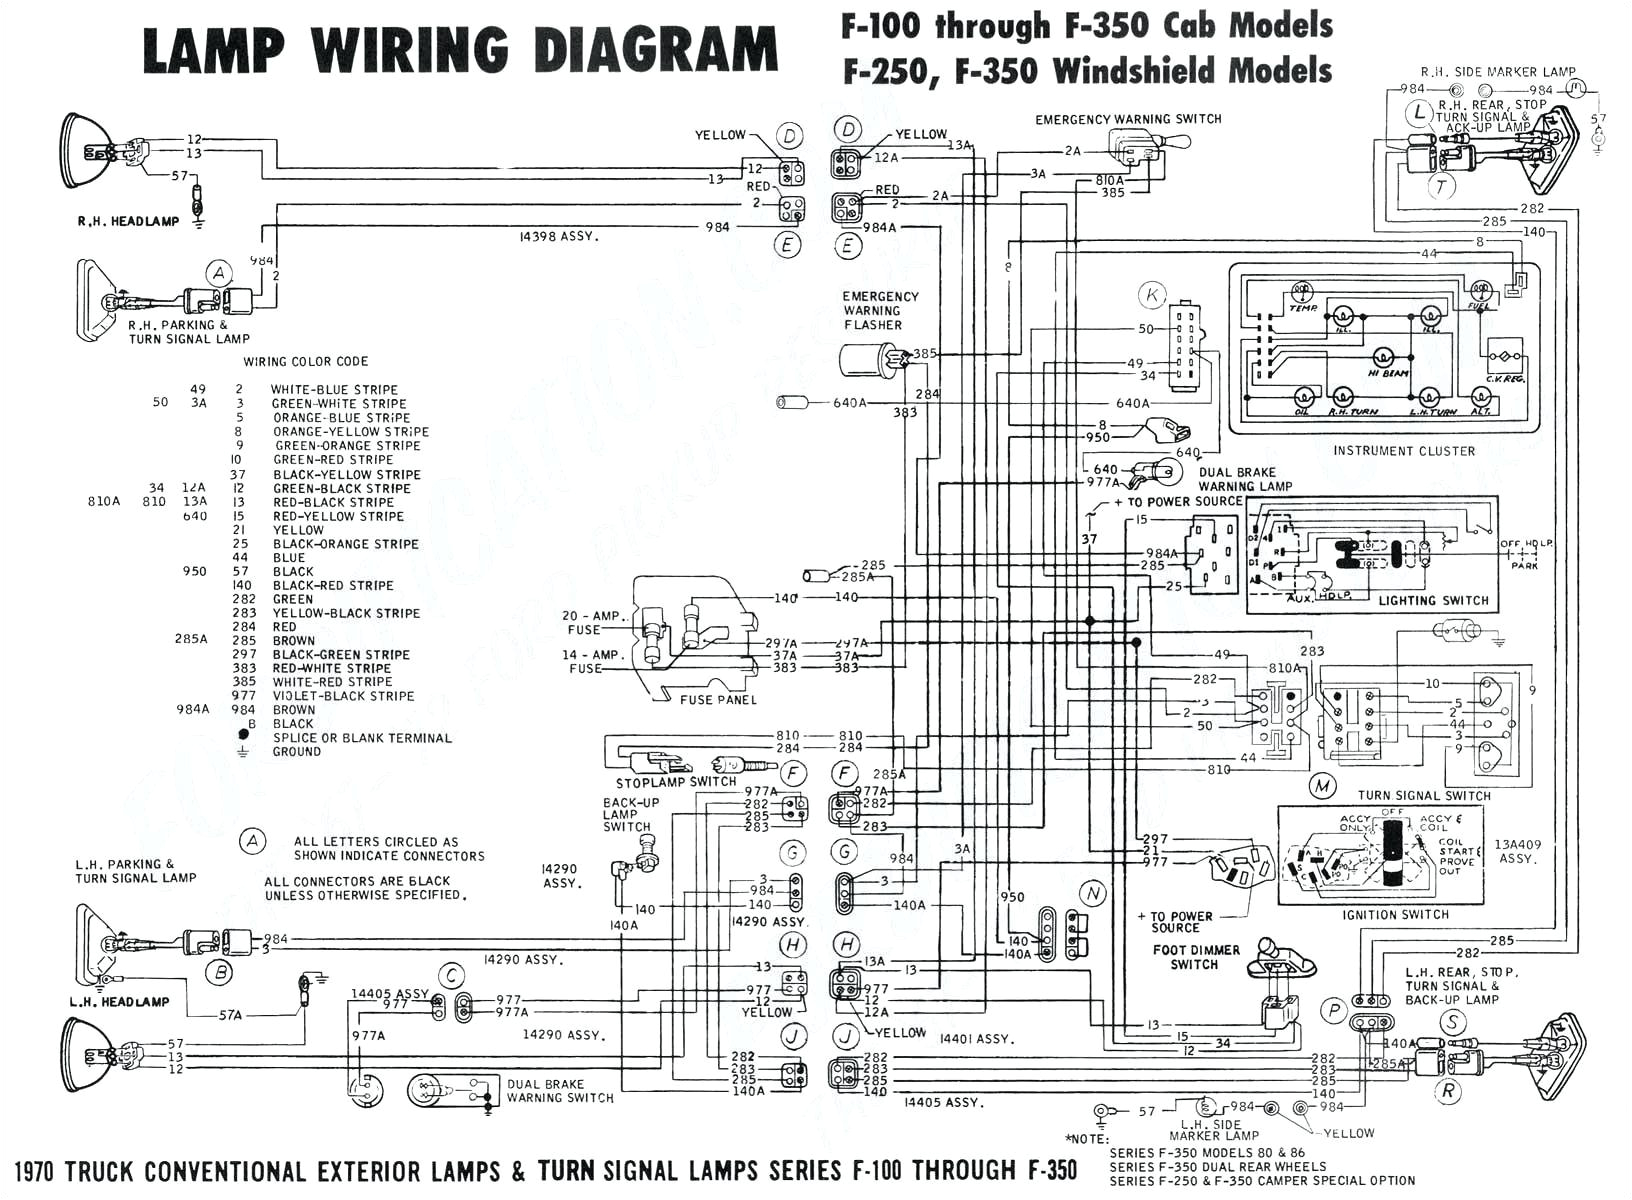 Eaton Gfci Outlet Wiring Diagram